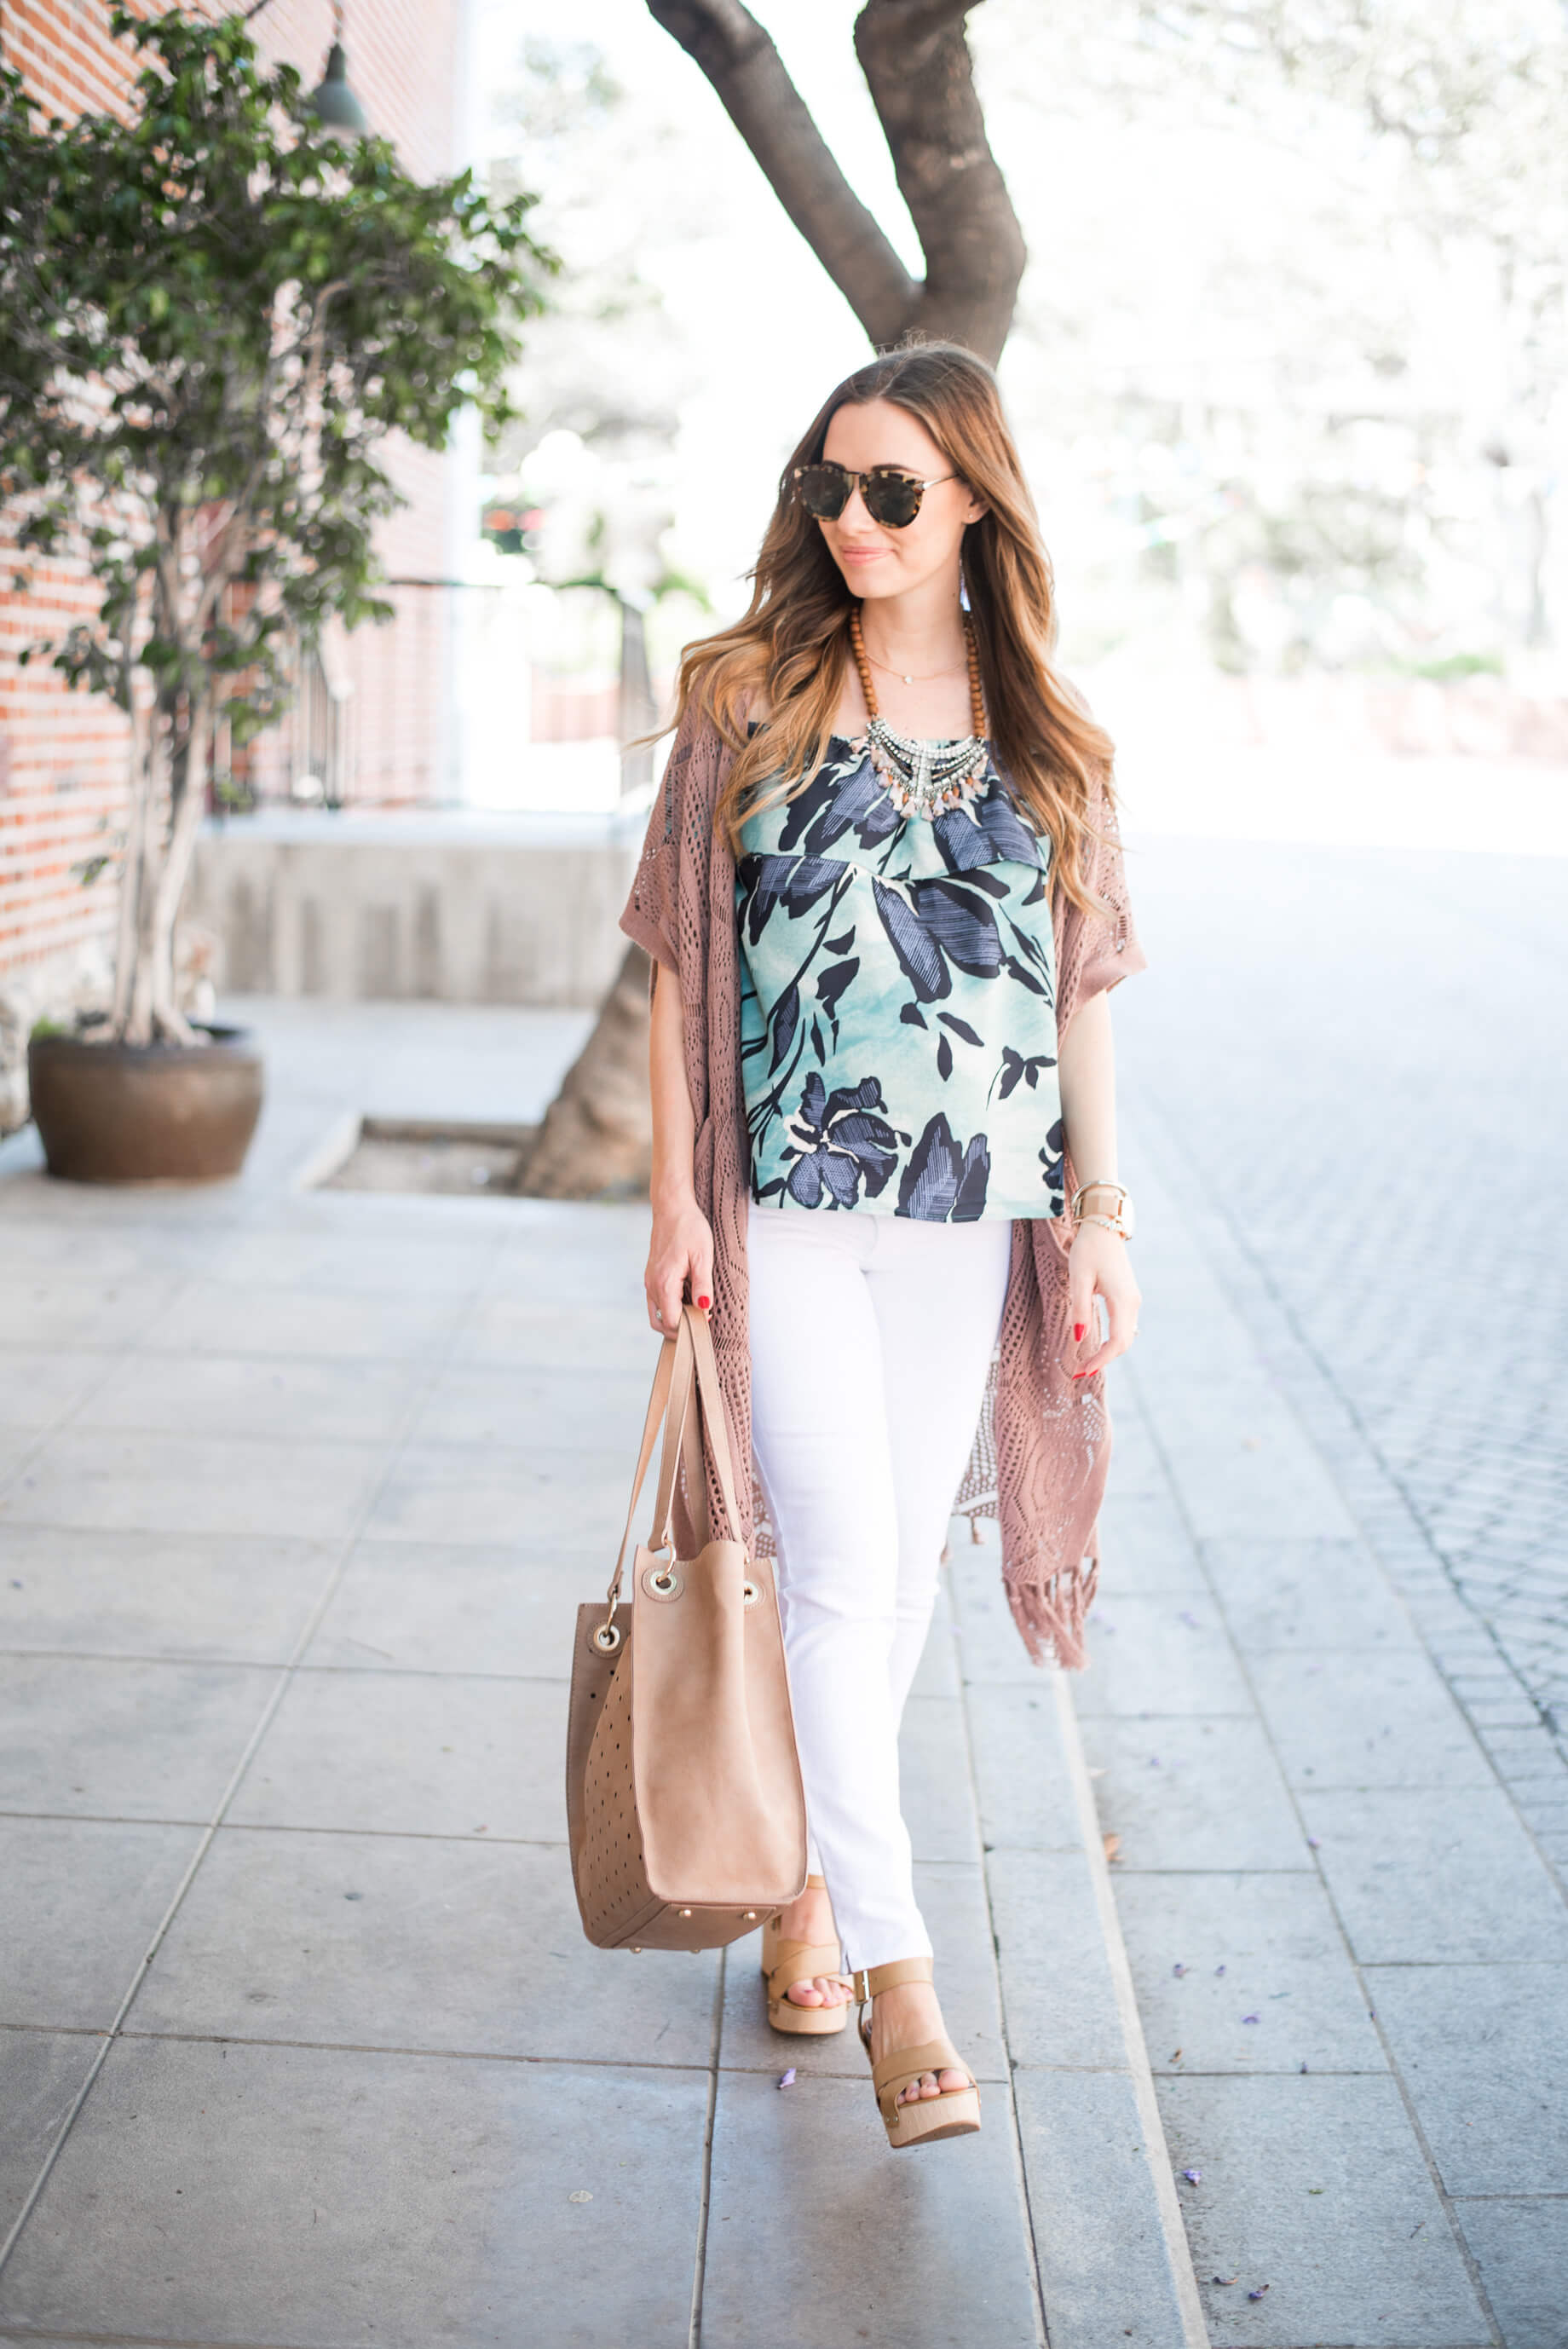 floral top and white jeans outfit inspiration